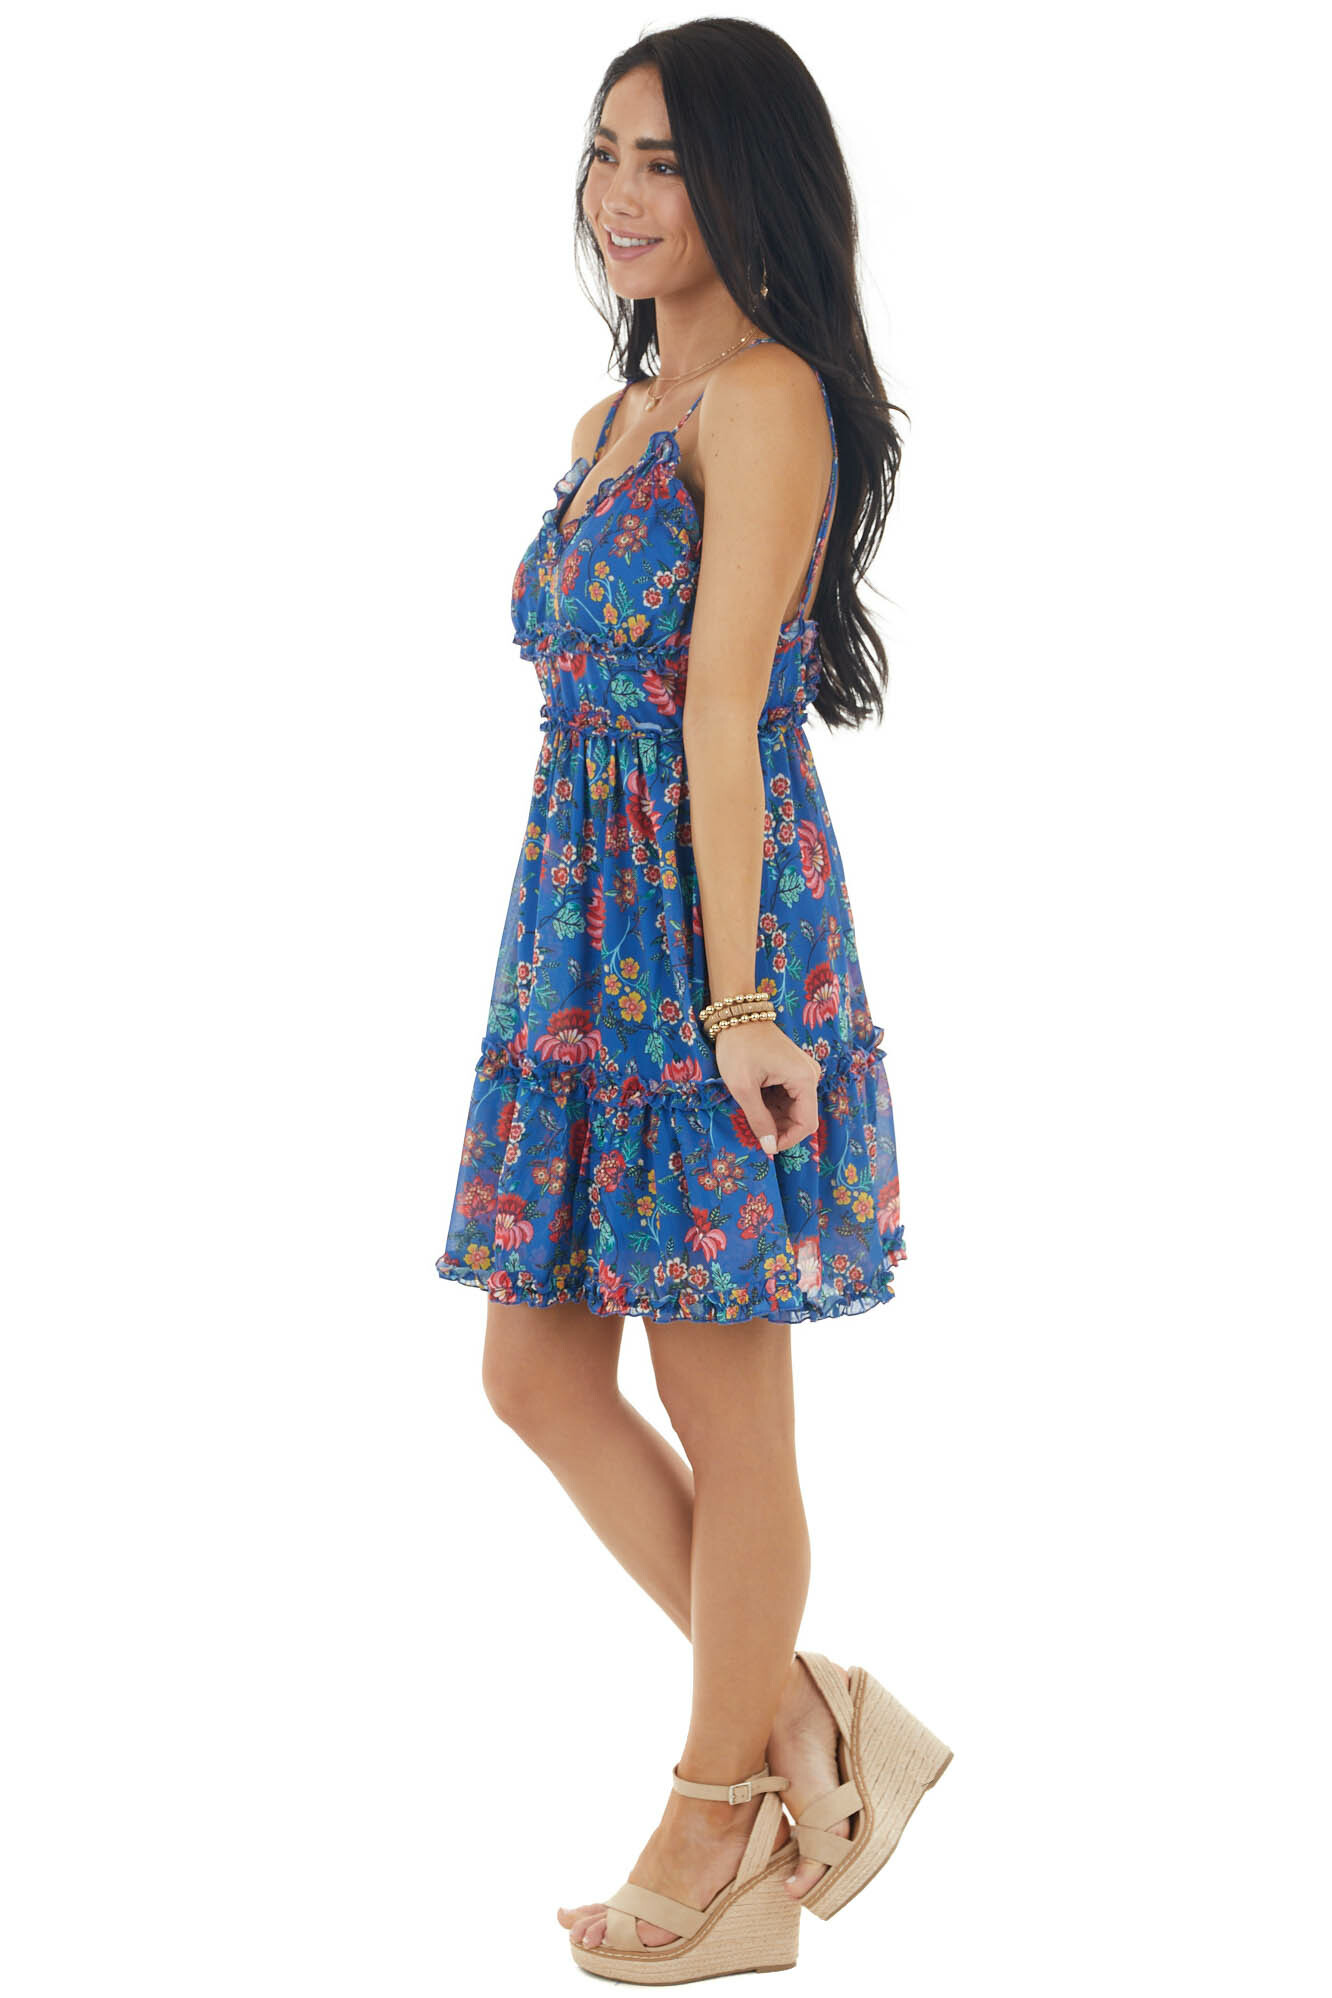 Royal Blue Floral Print Frilled Sleeveless Woven Short Dress